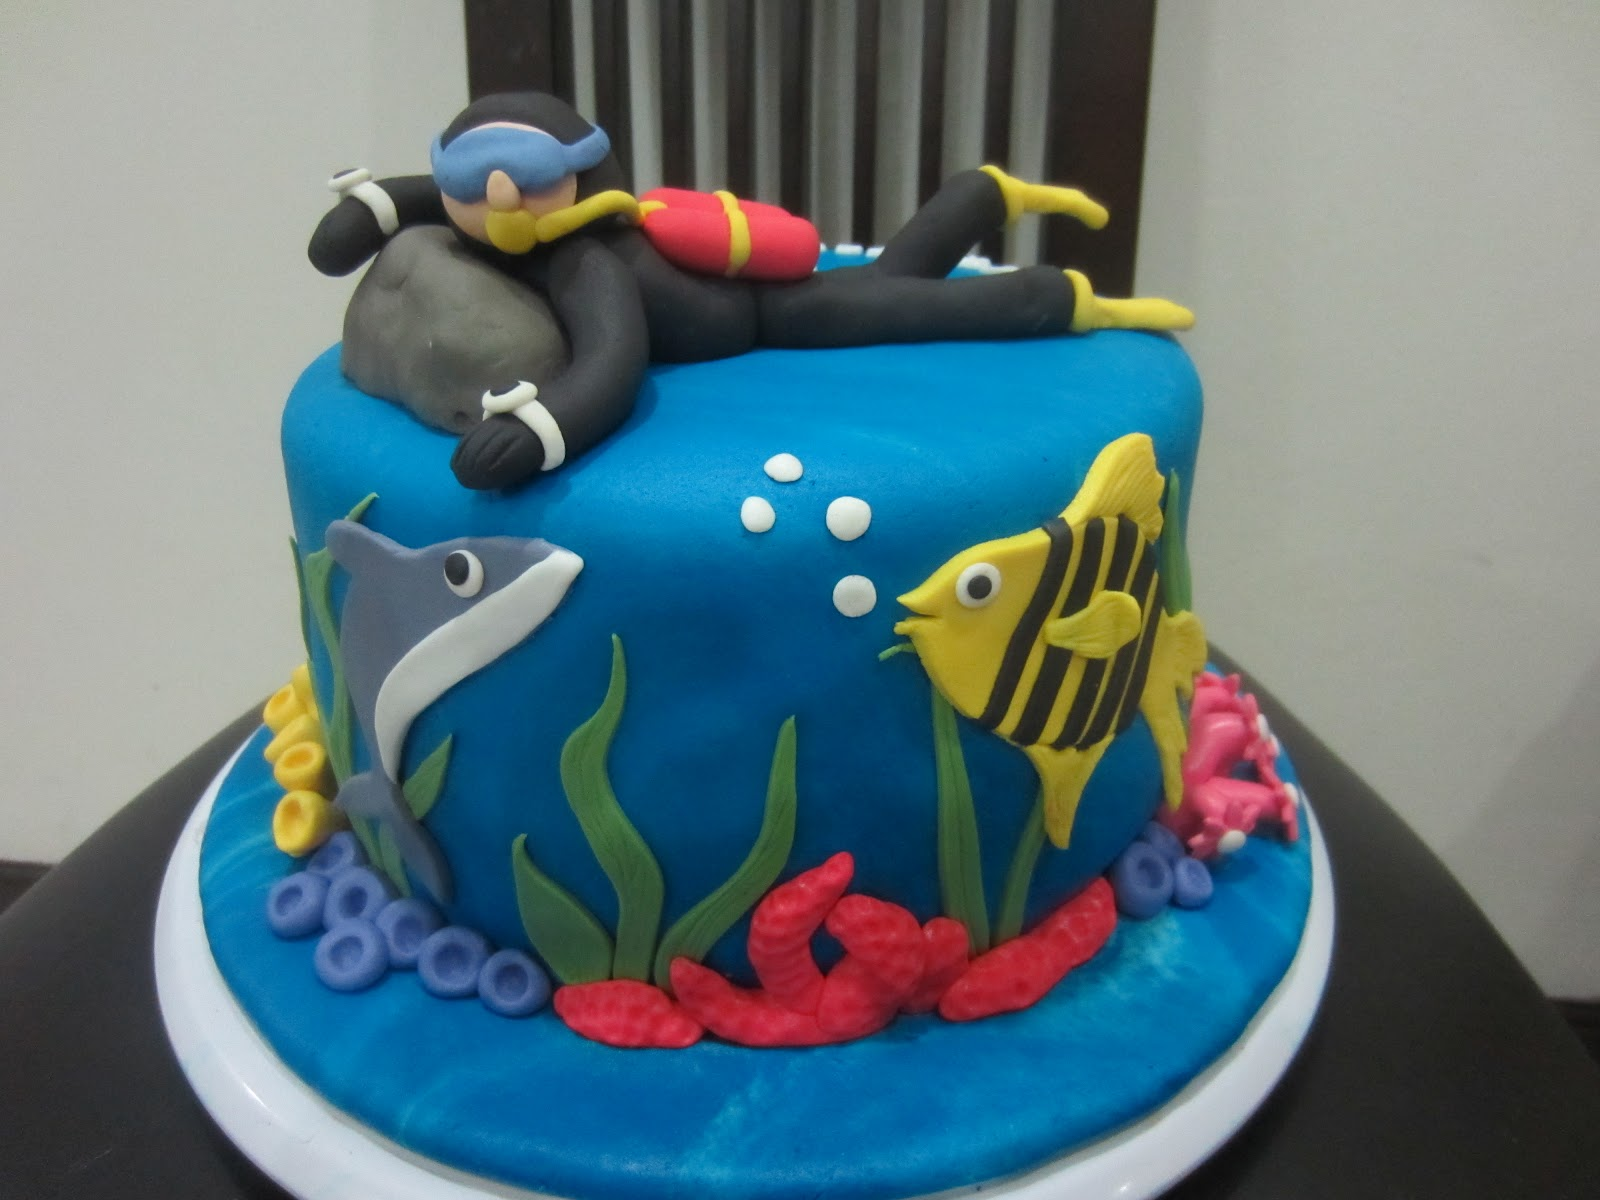 Home May De Cakes The Making Scuba Dude Cake And His